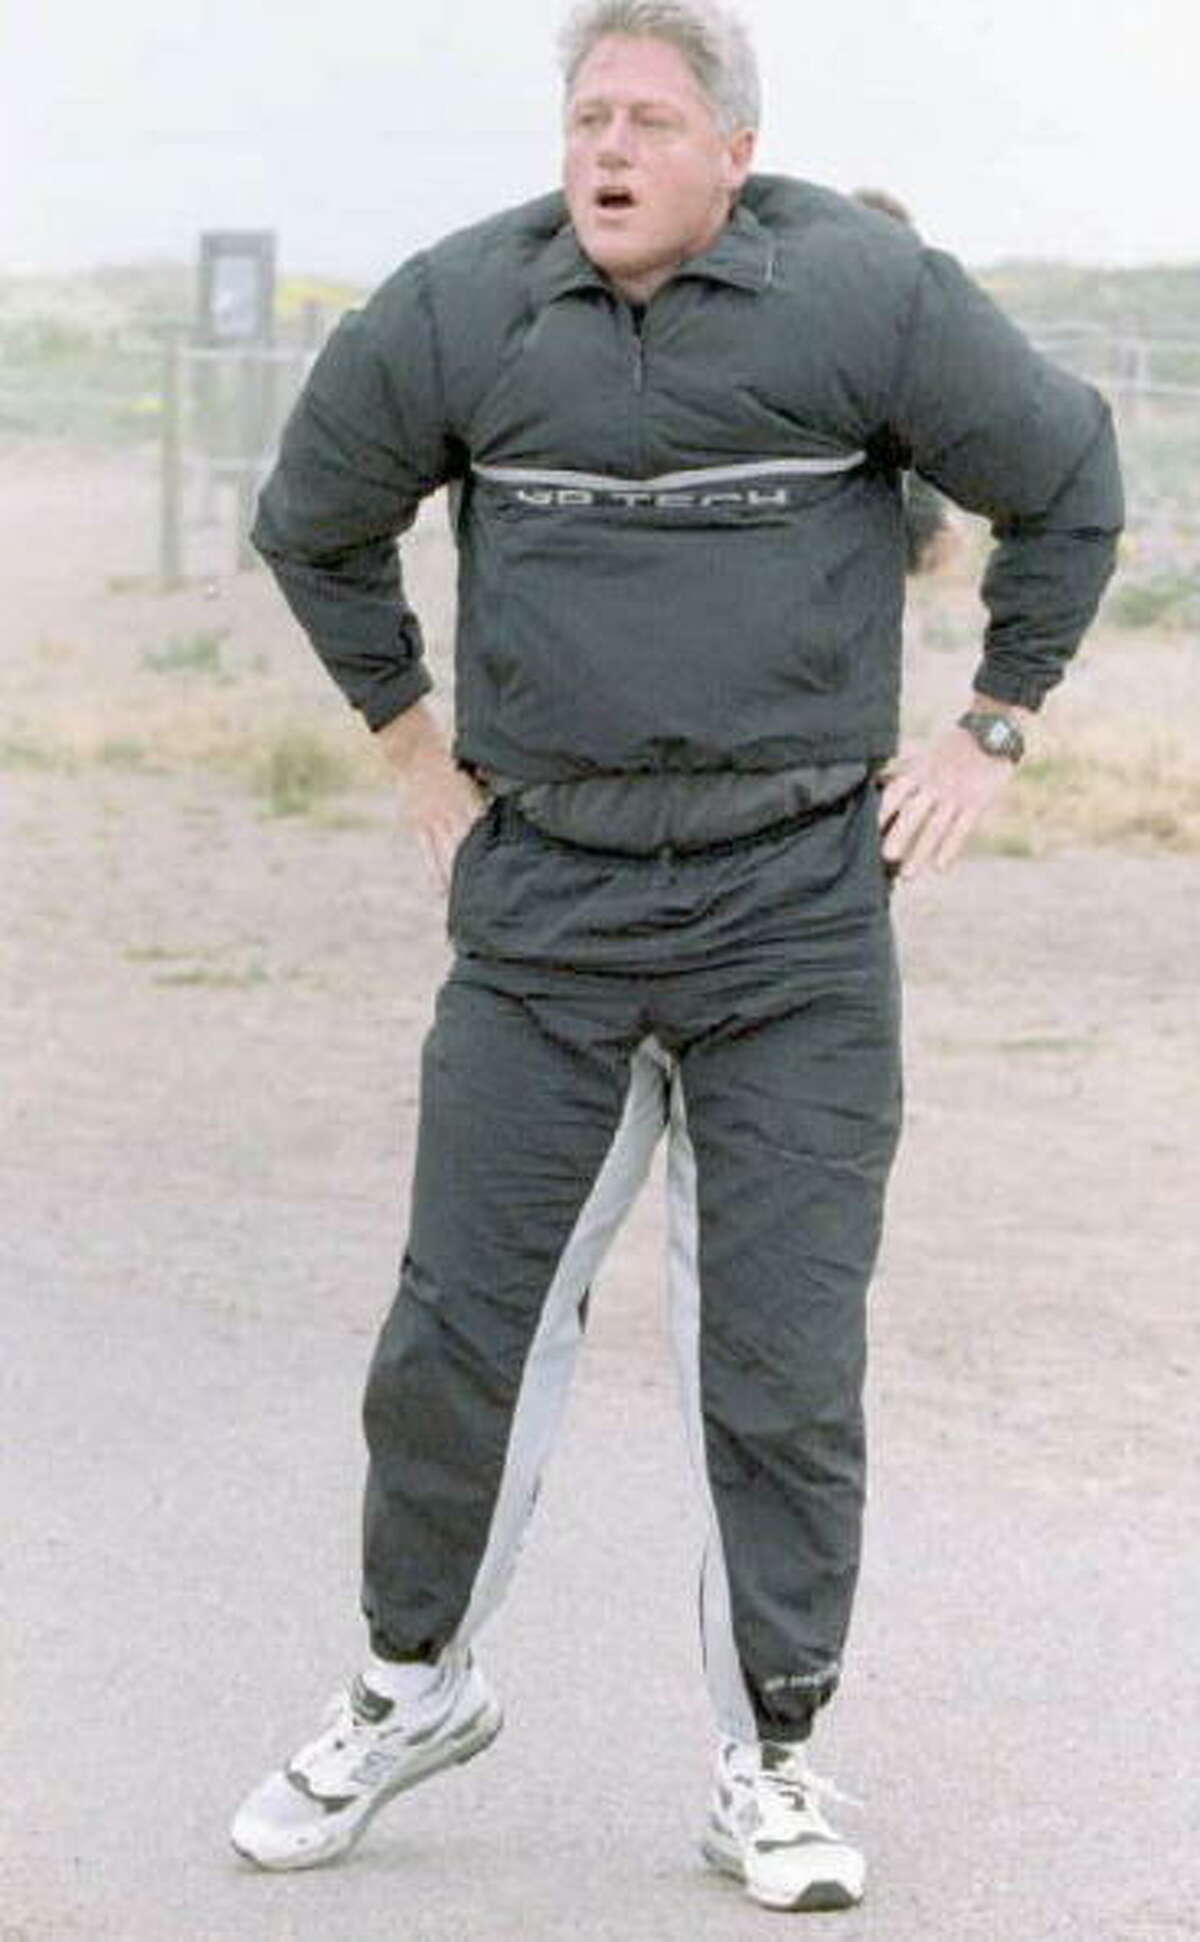 1995: Wind off of the San Francisco bay catches in US President Bill Clinton's jogging suit 26 June after a morning jog near the Golden Gate Bridge. President Clinton is in San Francisco to address the 50th anniversary celebration of the United Nations.